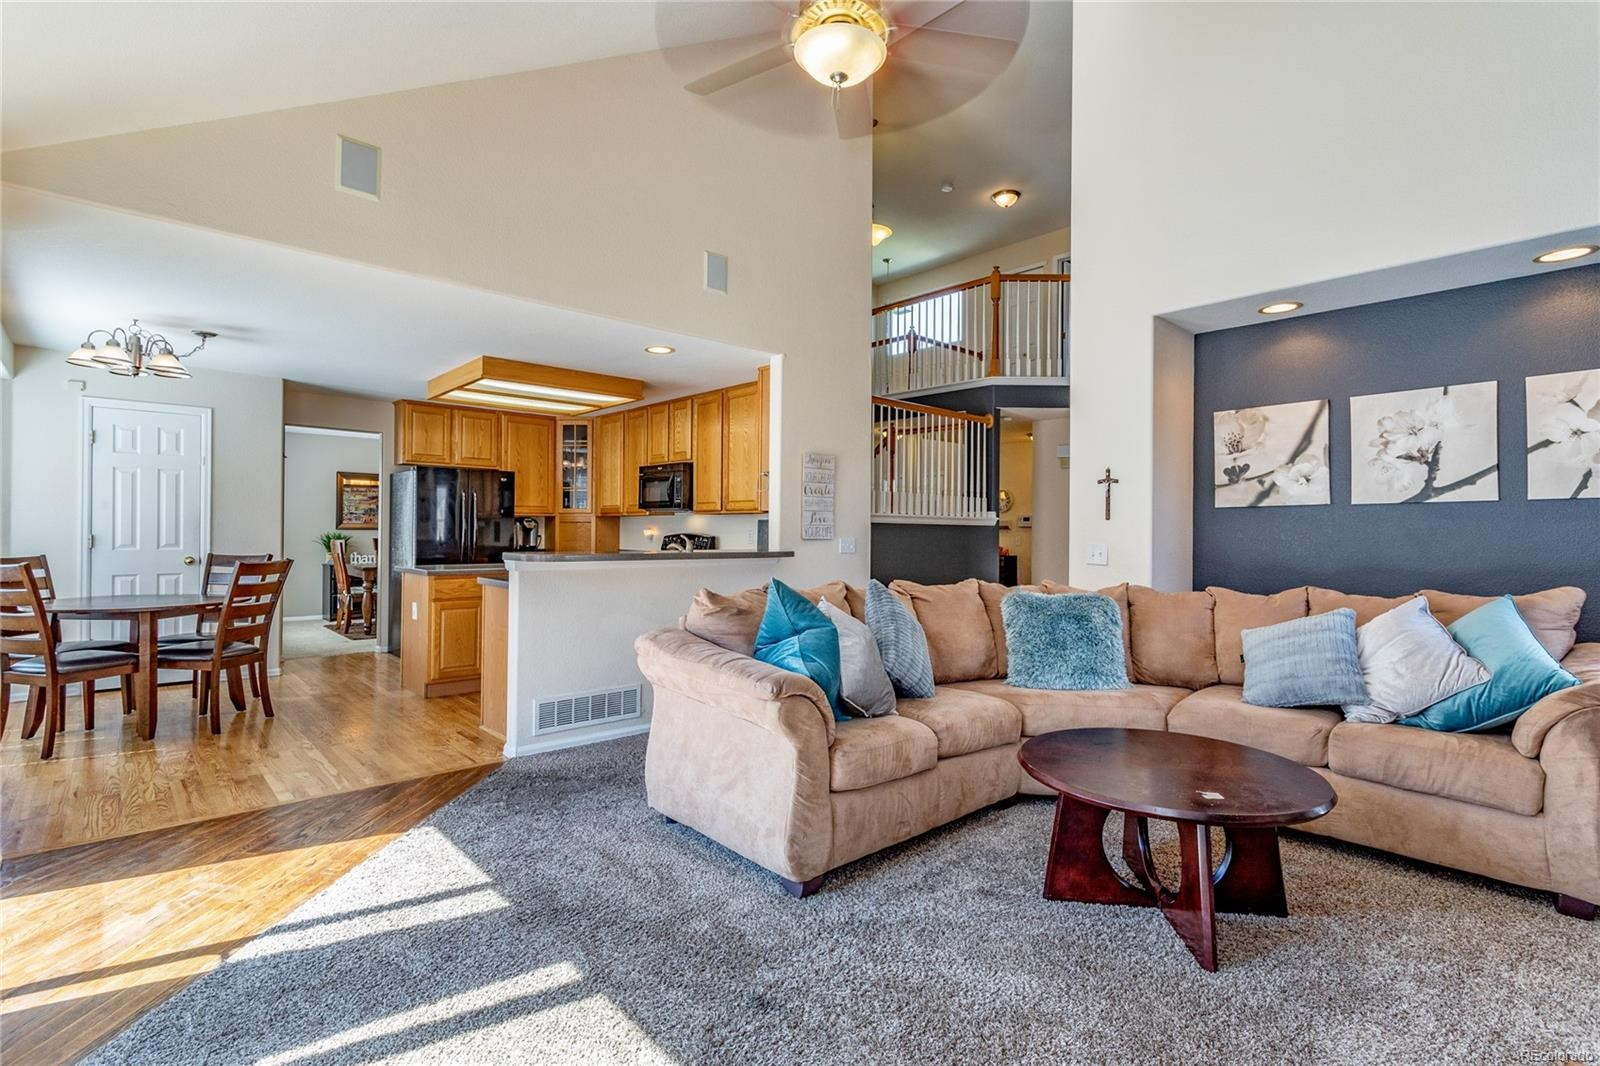 MLS# 3396693 - 10 - 6084 S Zante Way, Aurora, CO 80015